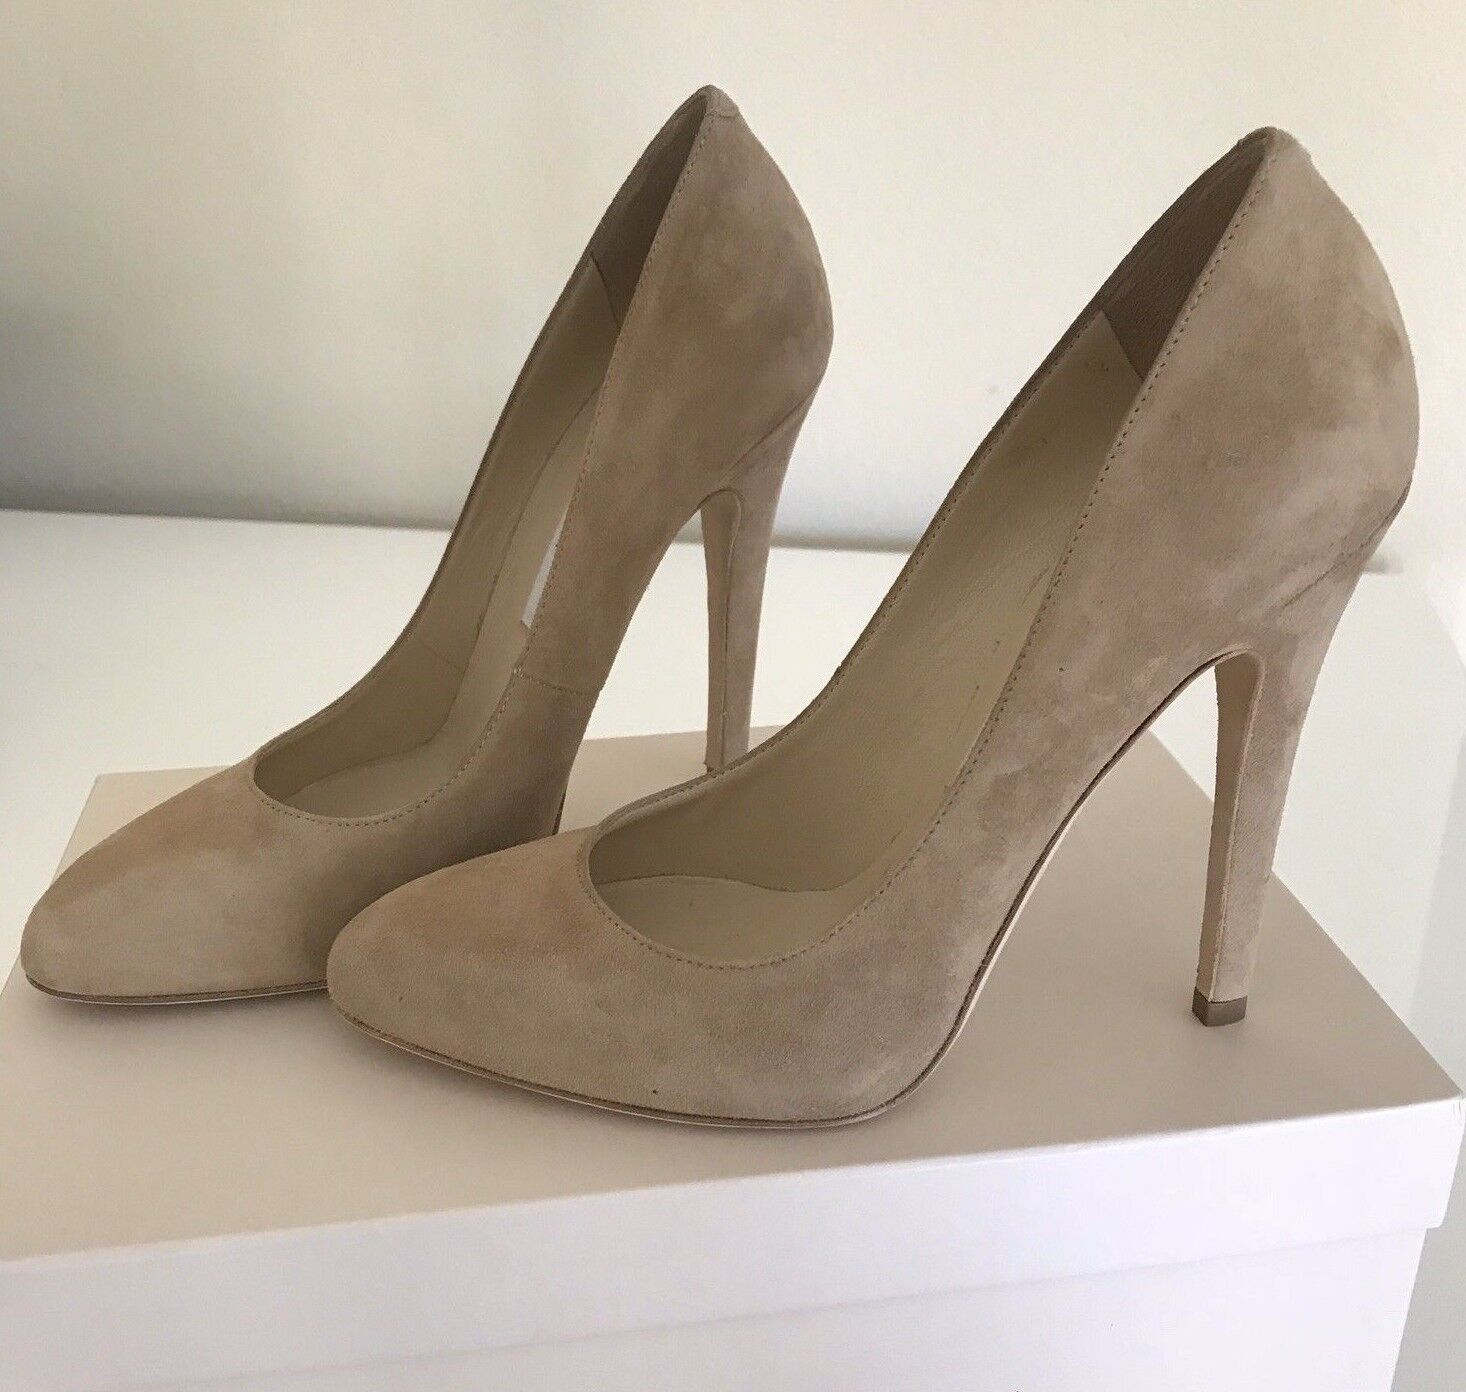 JIMMY CHOO 247 Victorie Sue Pump Nude Suede Size 37.5